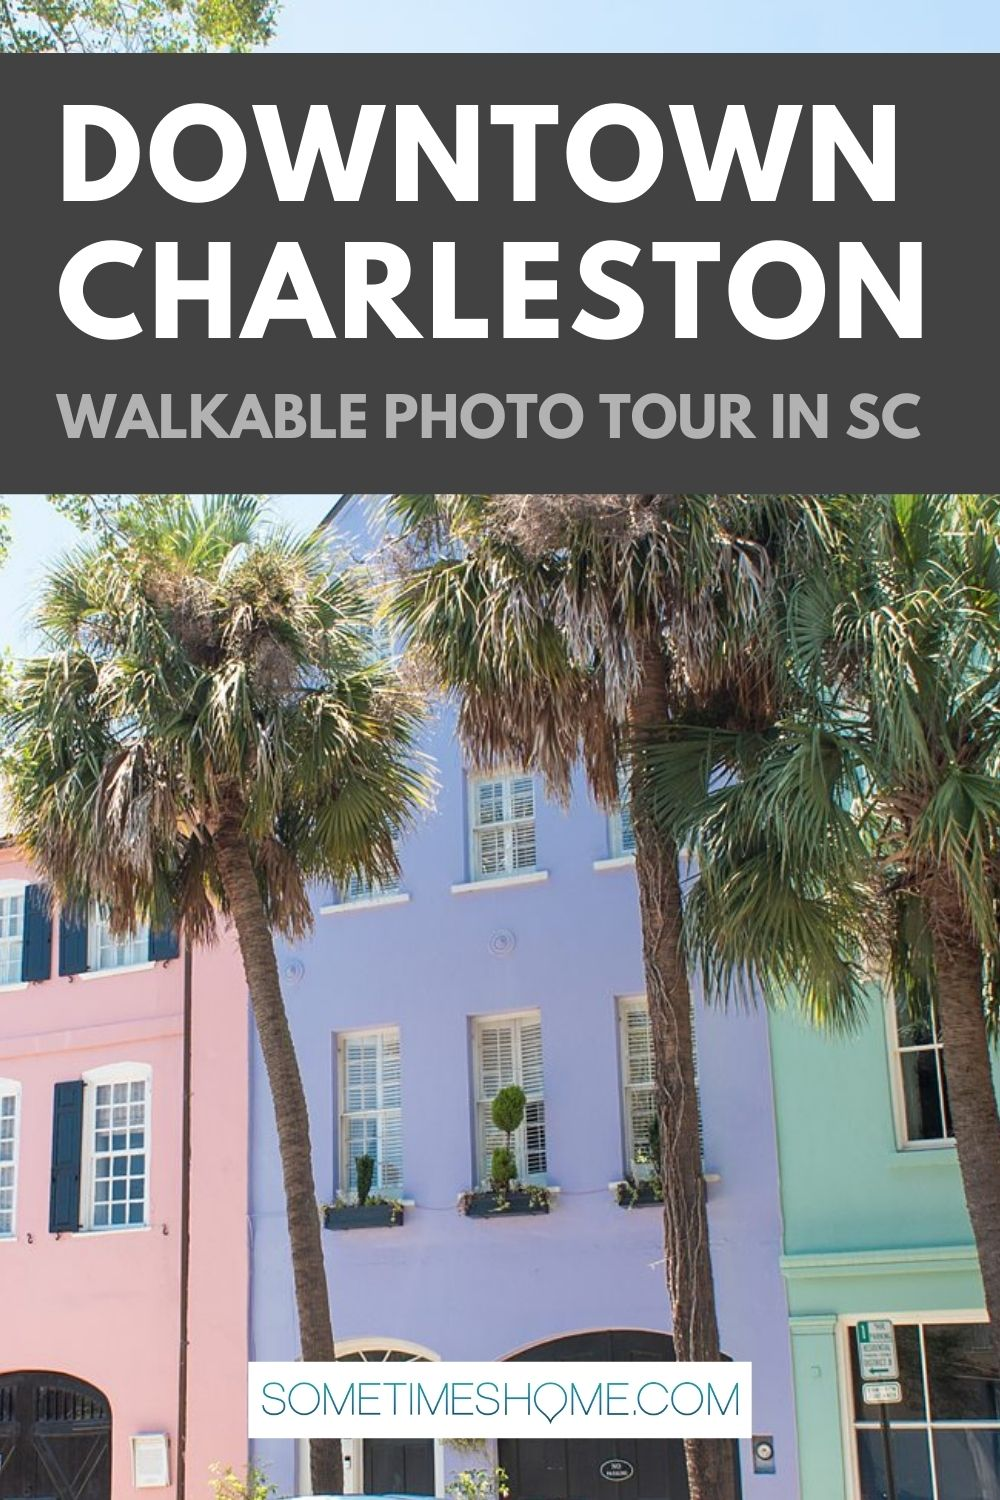 Downtown Charleston walkable photo tour in SC with a picture of pastel colors row homes and palm trees on Rainbow Row.